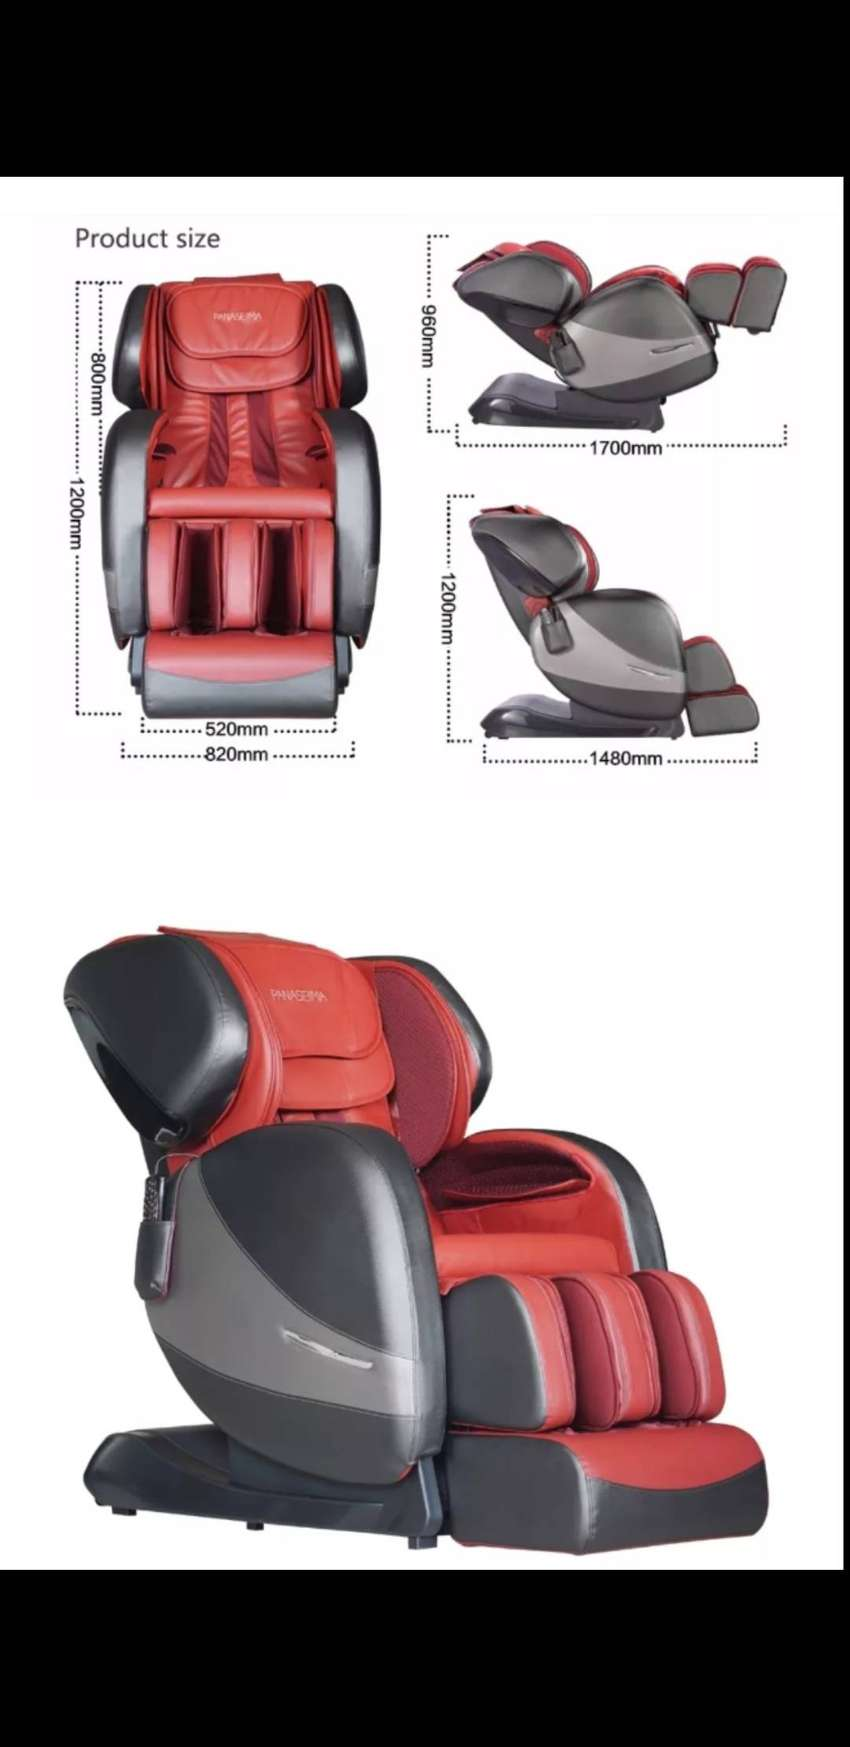 Top of the range massage chair with 11 automatic functions